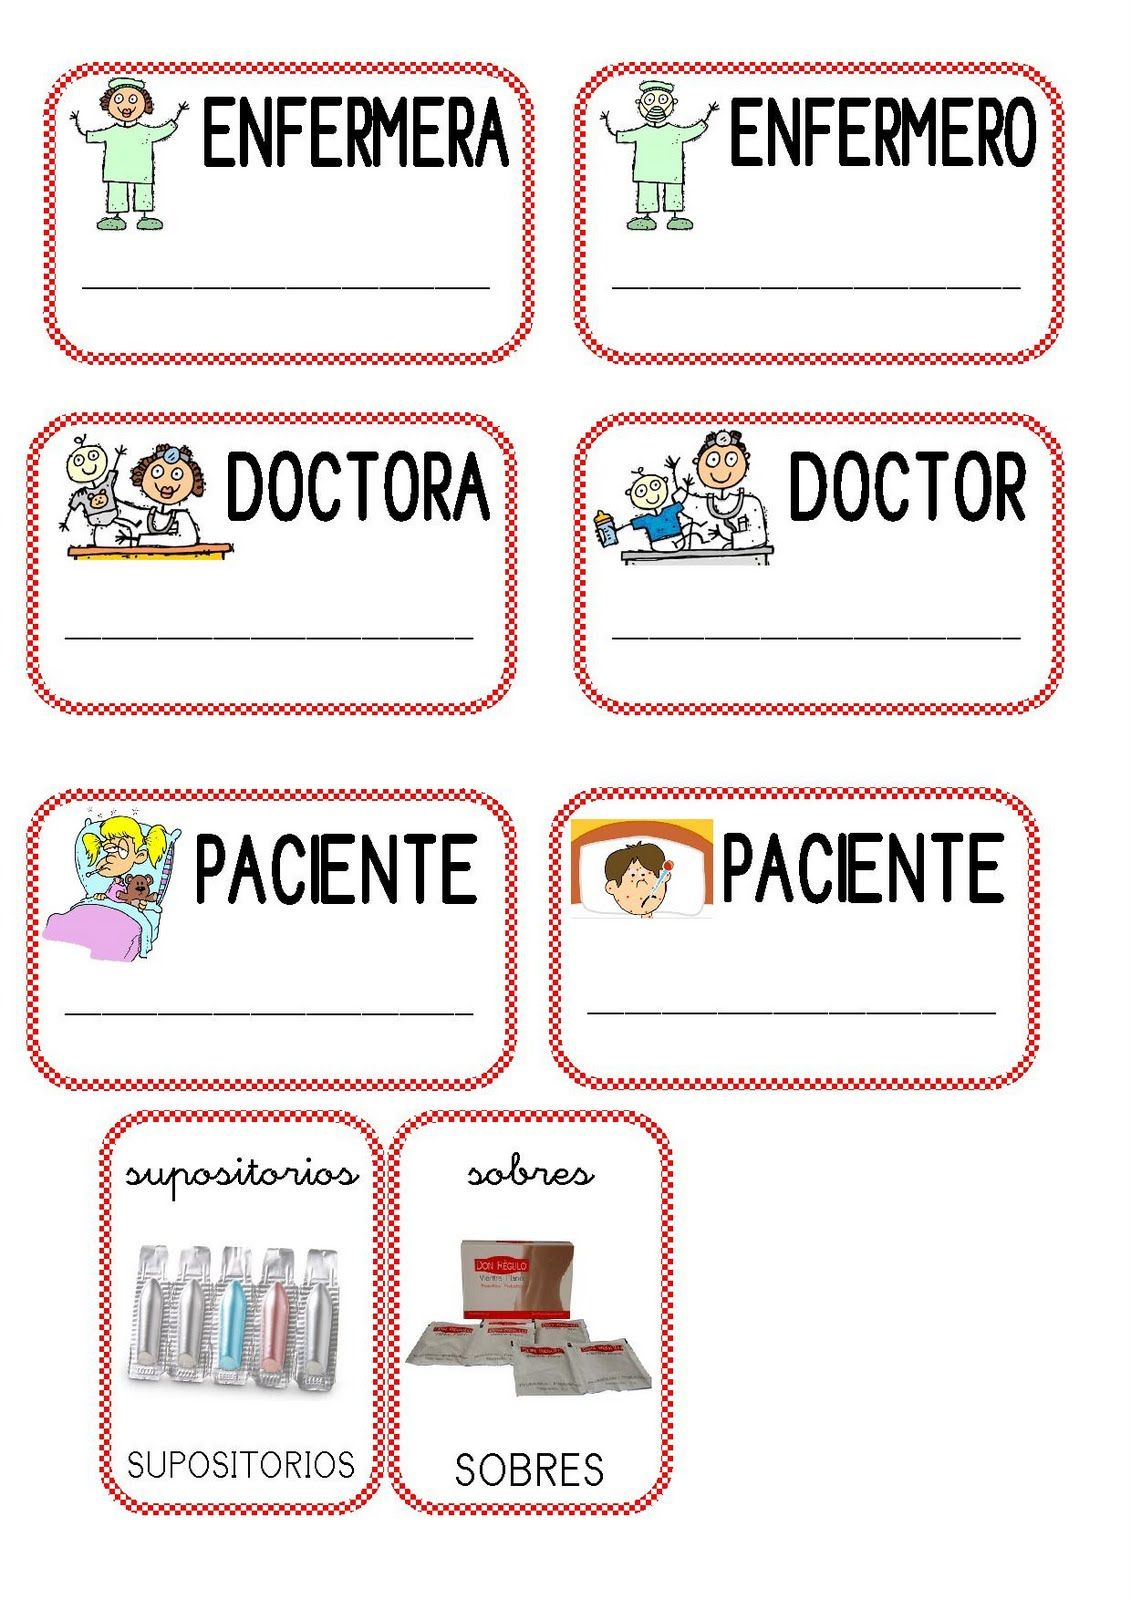 Pin by Dolores on proyecto cuerpo humano | Pinterest